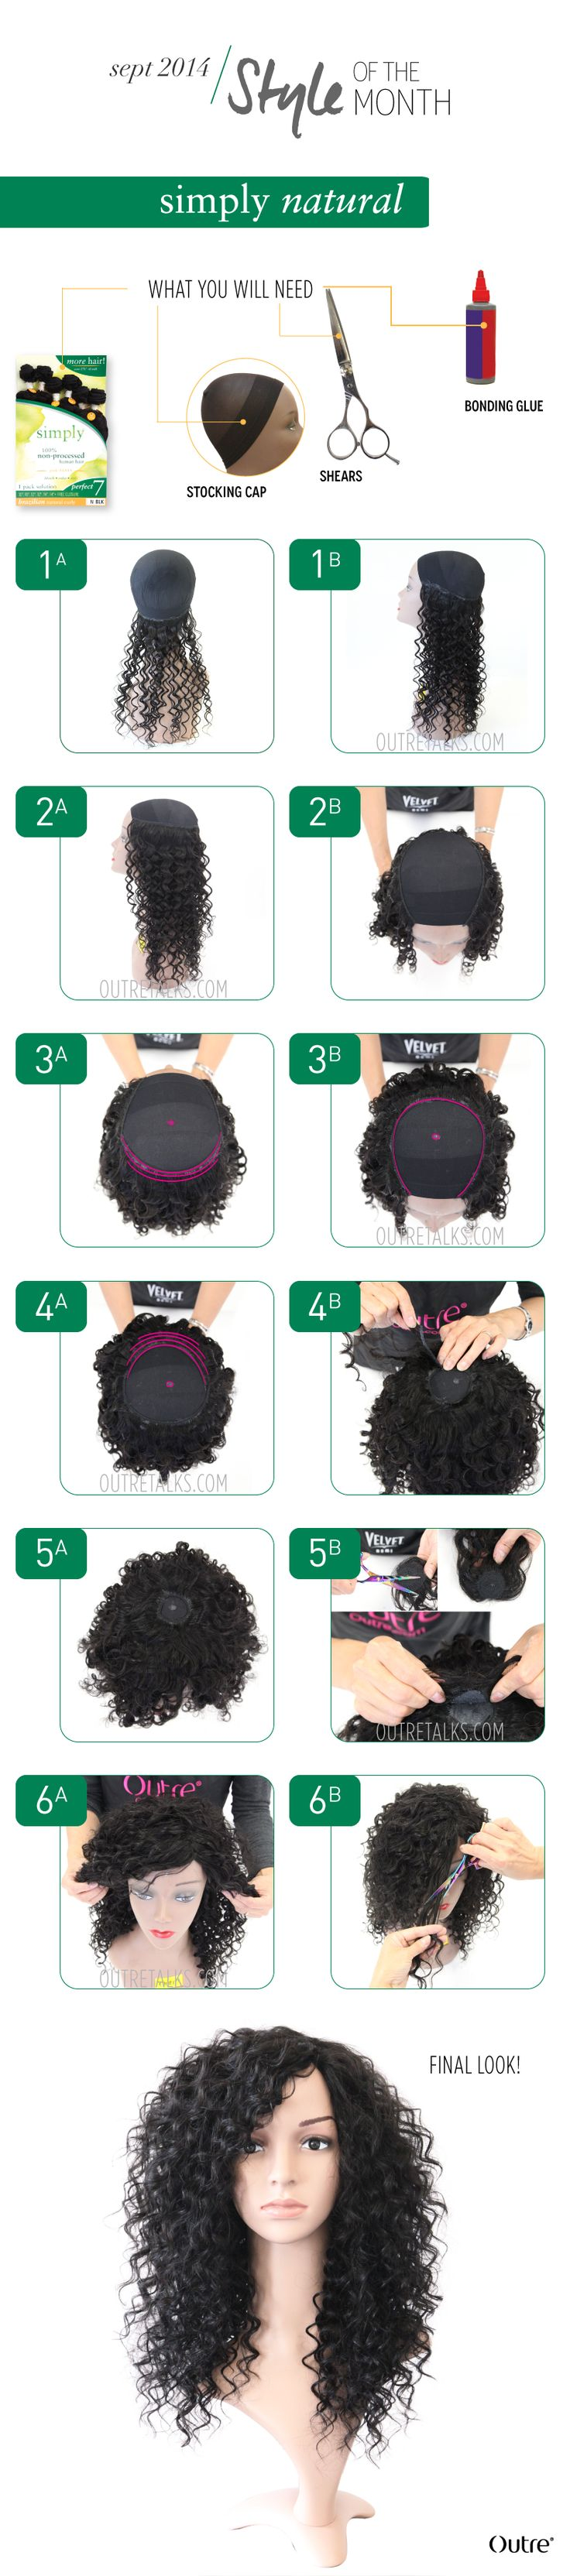 how to create a full cap wig, stocking cap wig, natural curly, full and gorgeous repin & like. listen to Noelito Flow songs. Noel. Thanks https://www.twitter.com/noelitoflow  https://www.youtube.com/user/Noelitoflow